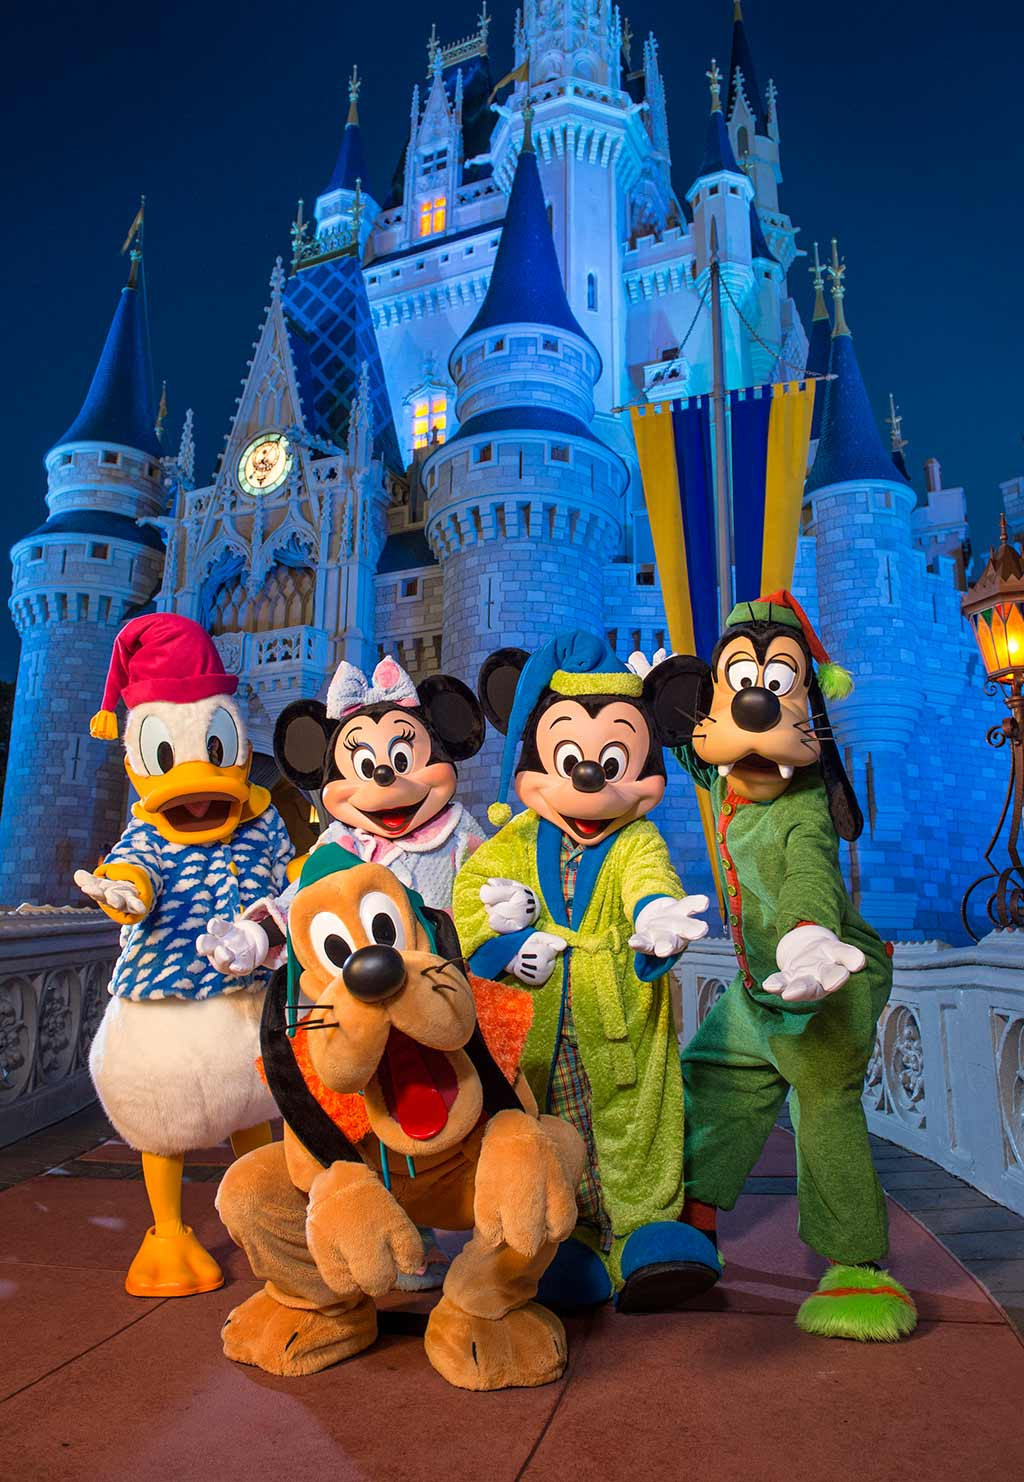 Mickey Mouse and friends in front of Cinderella Castle